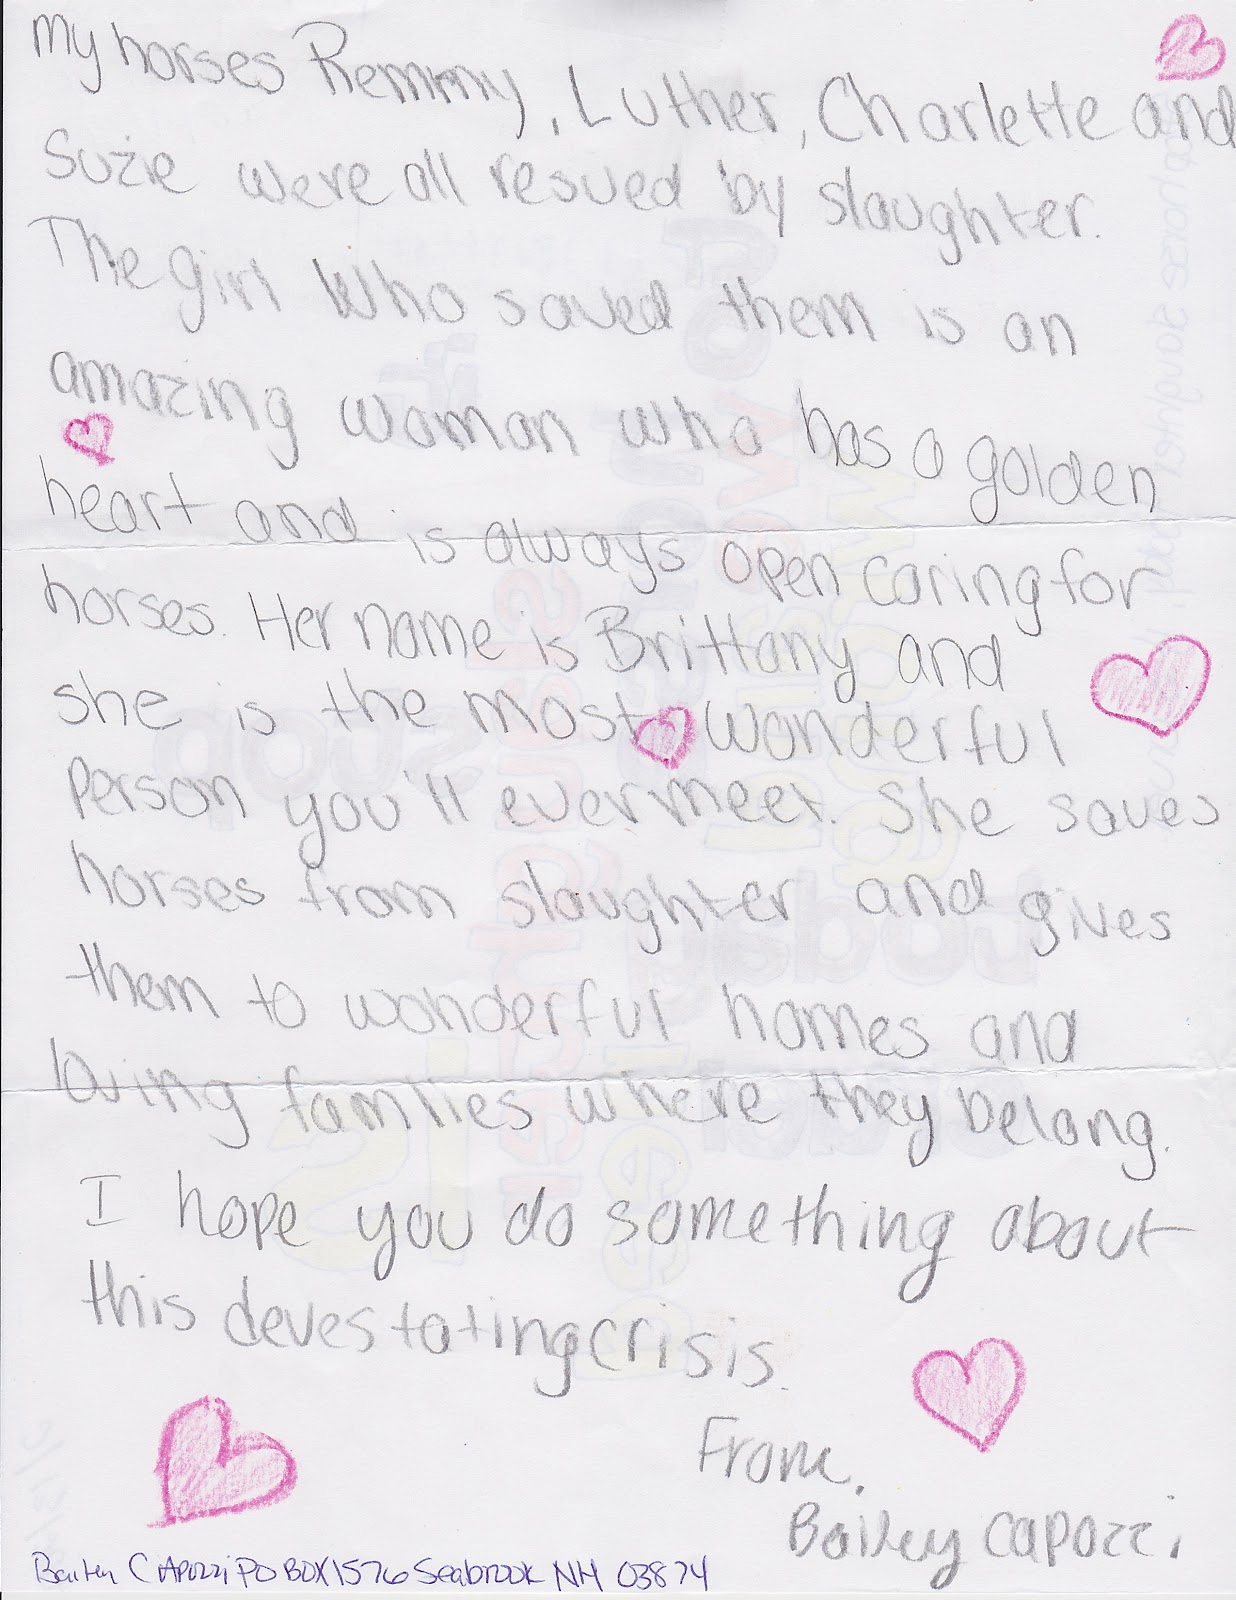 Children 4 Horses: Letter Examples From Two Sisters :-)